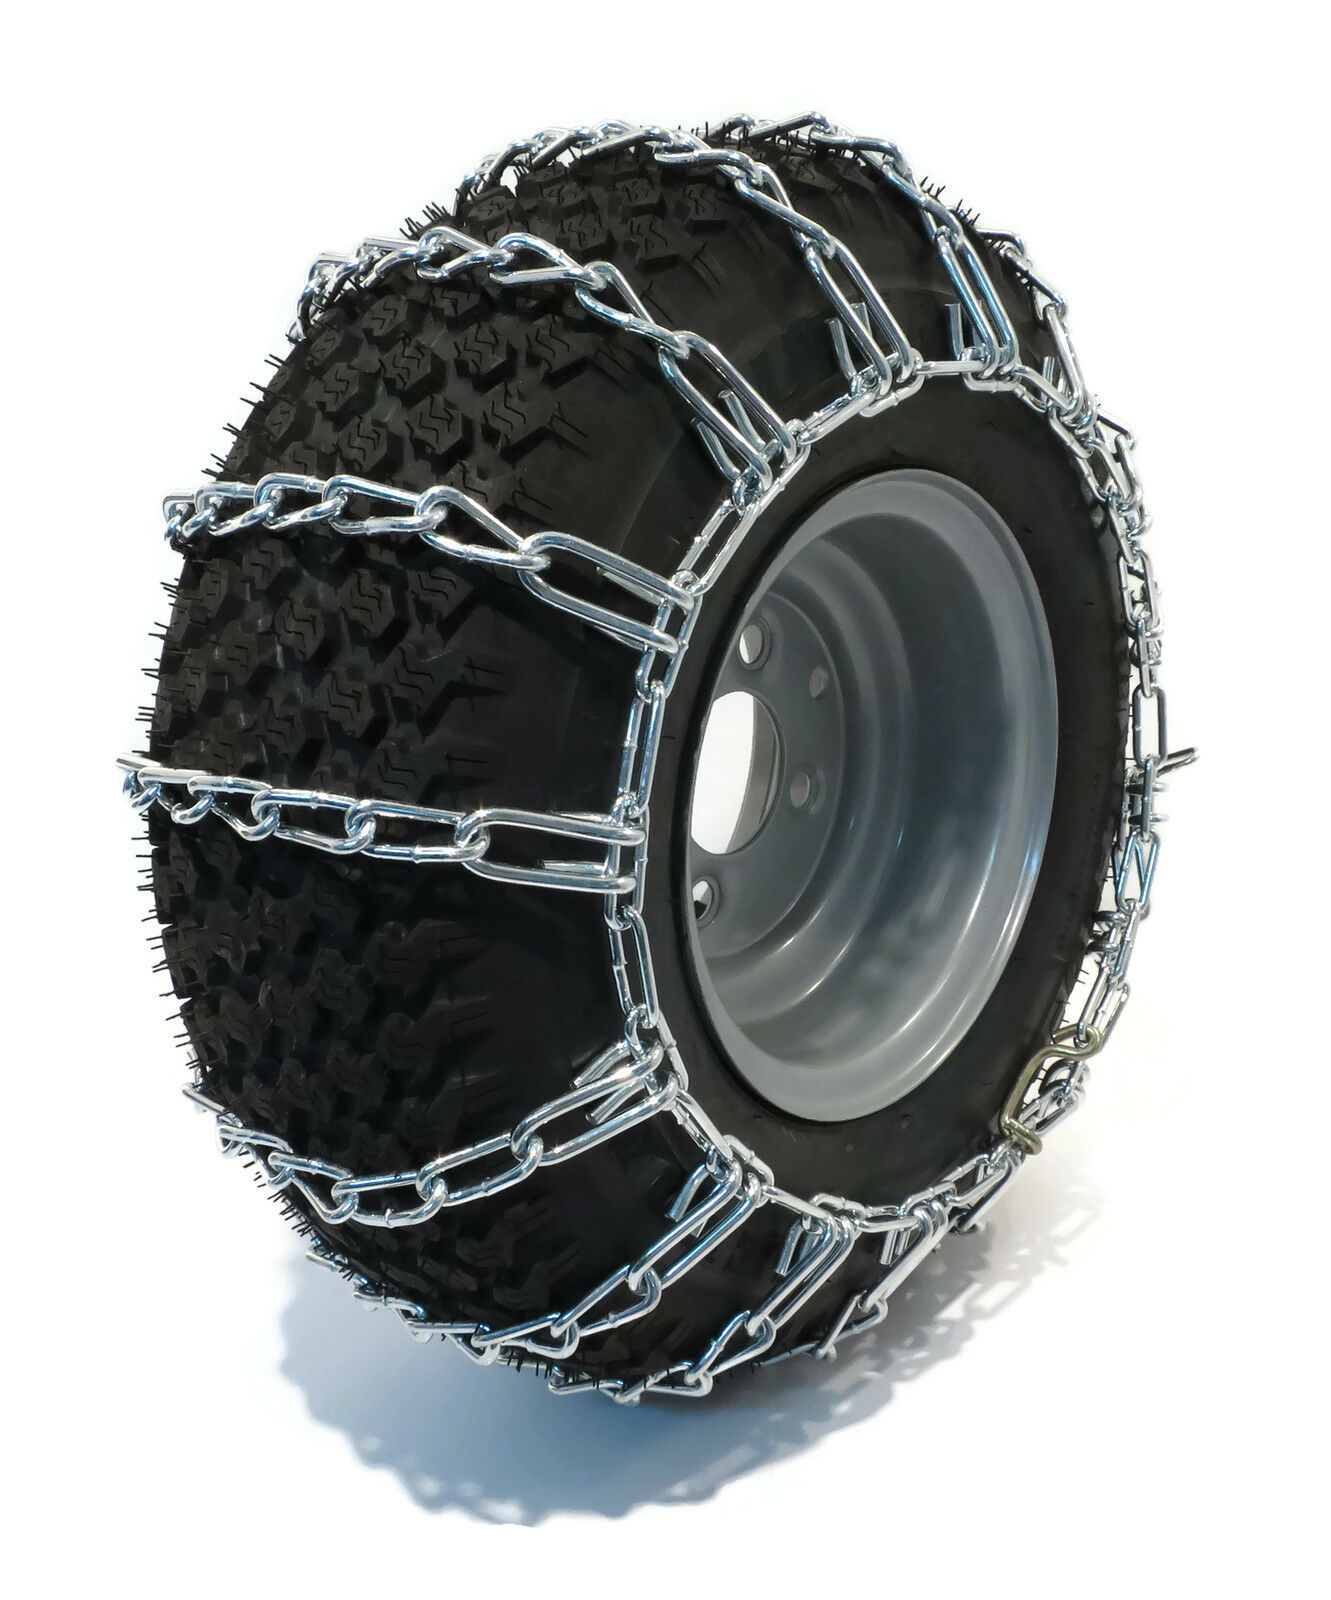 Pair 2 Link Tire Chains 26x12 12 For Kubota Lawn Mower